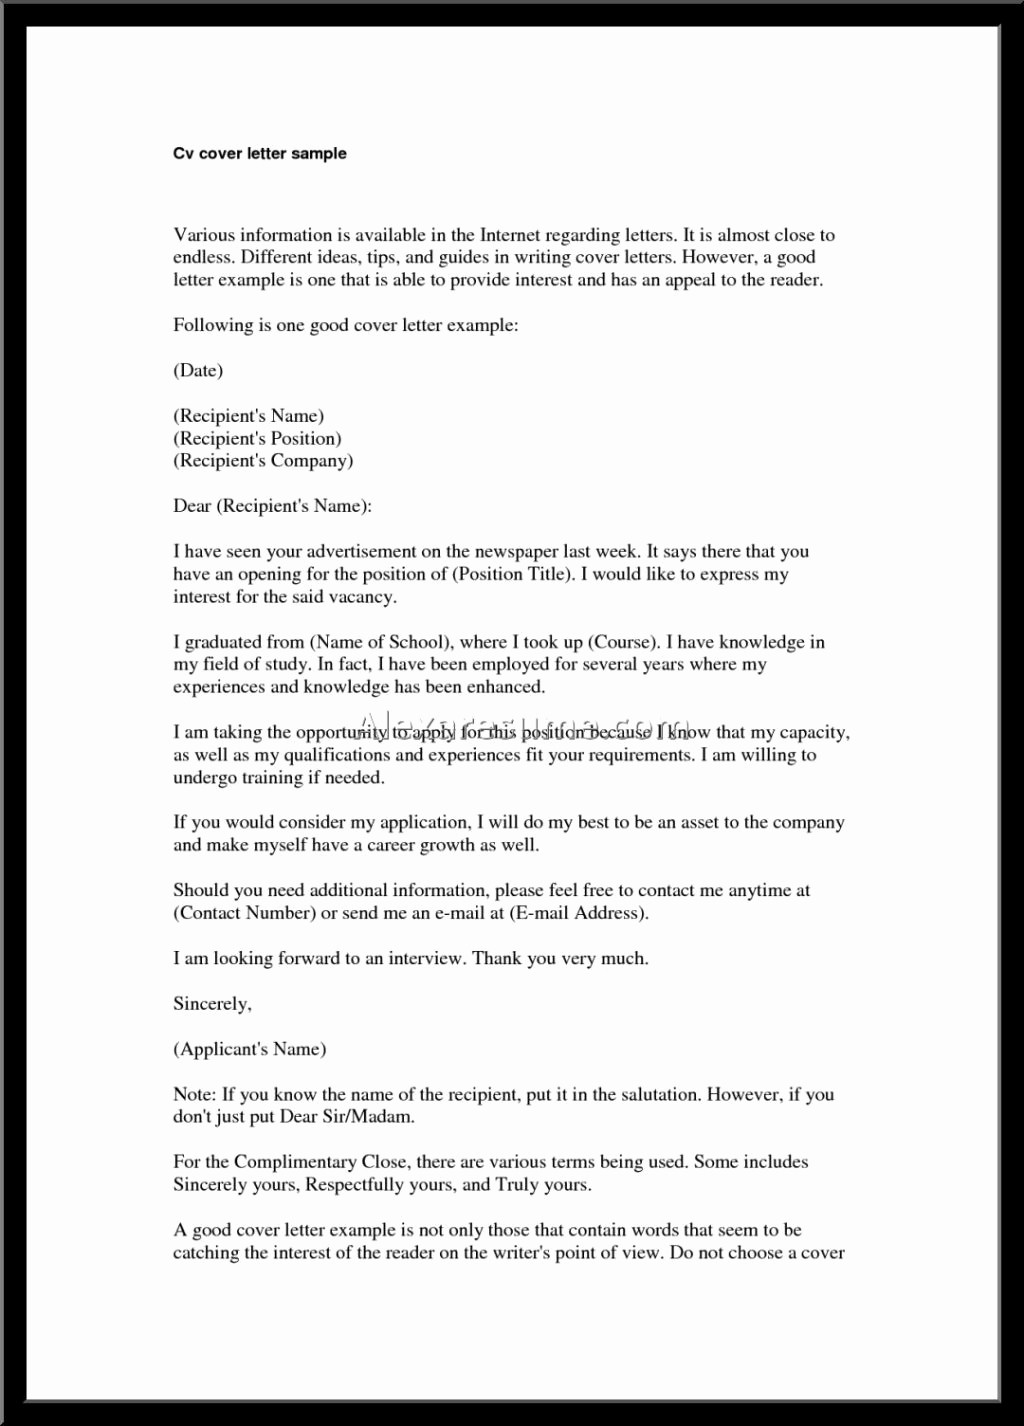 Cover Letter On A Resume Best Of Best Good Cover Letter for Resume – Letter format Writing